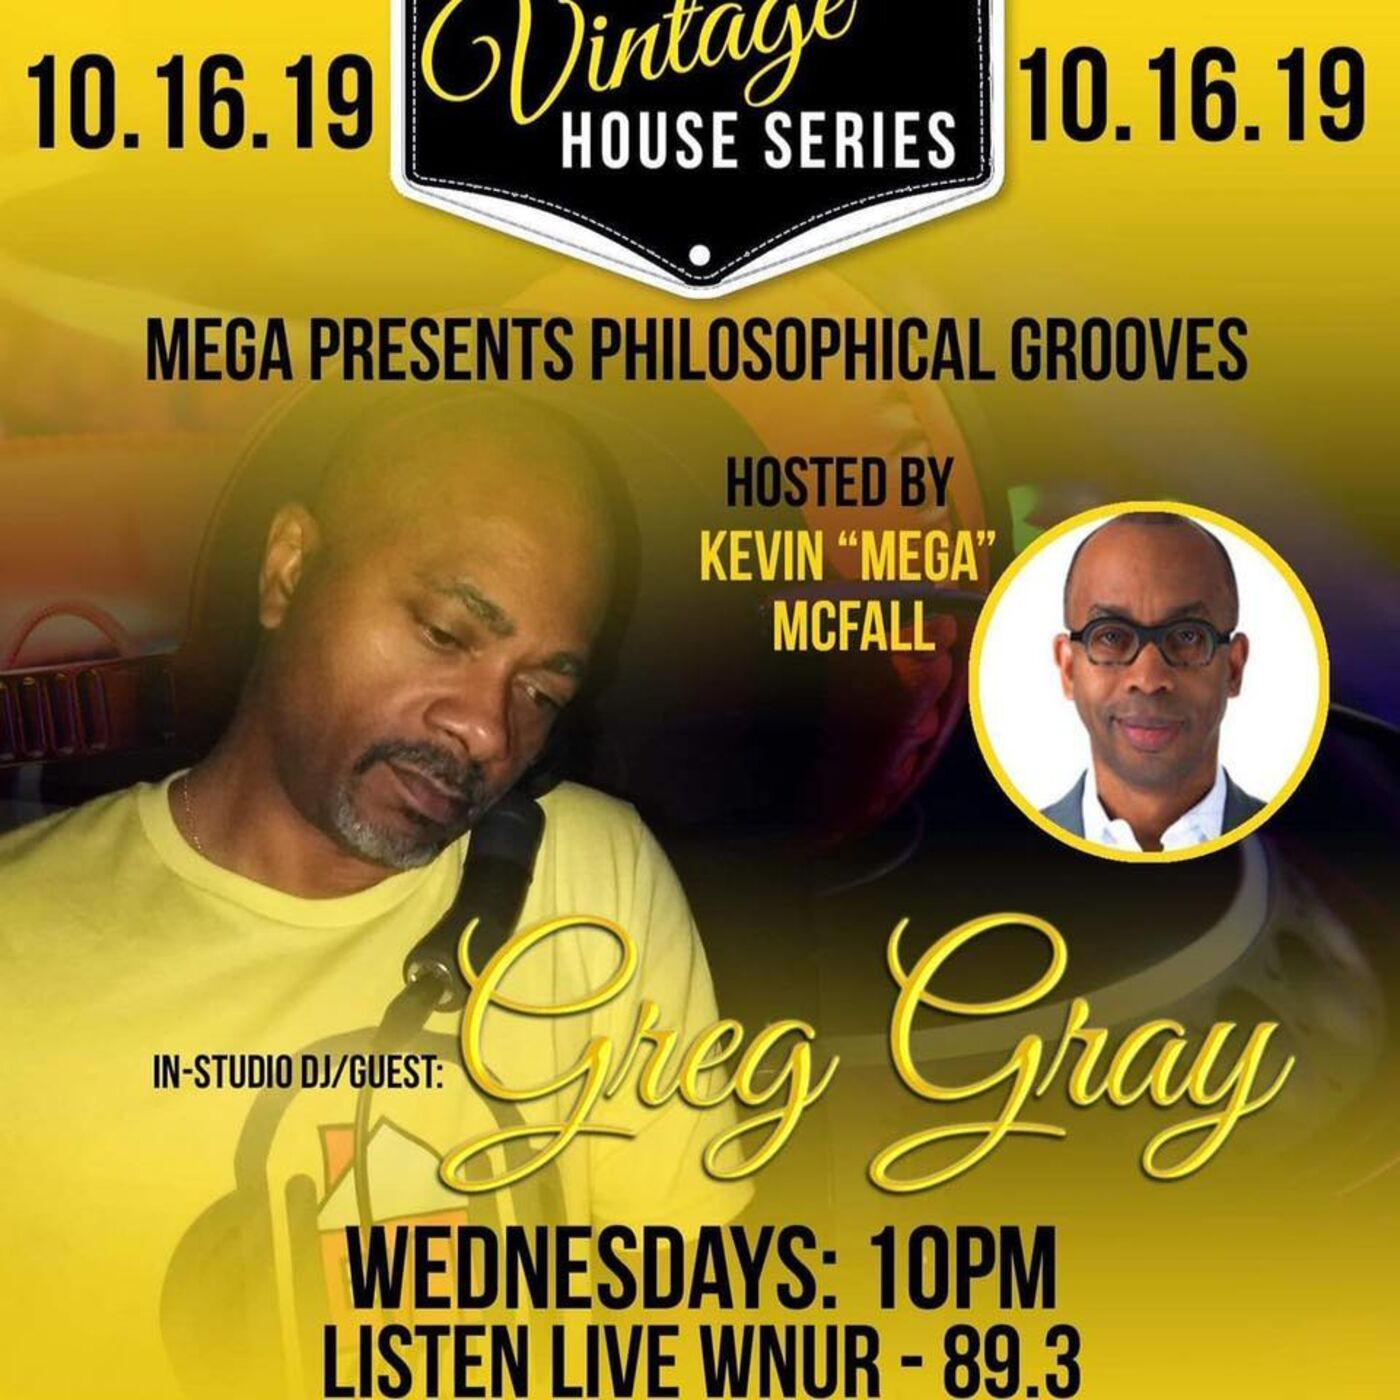 DJ Greg Gray reflects on his life in #HouseMusic, the PowerPlant and Frankie Knuckles with Kevin McFall